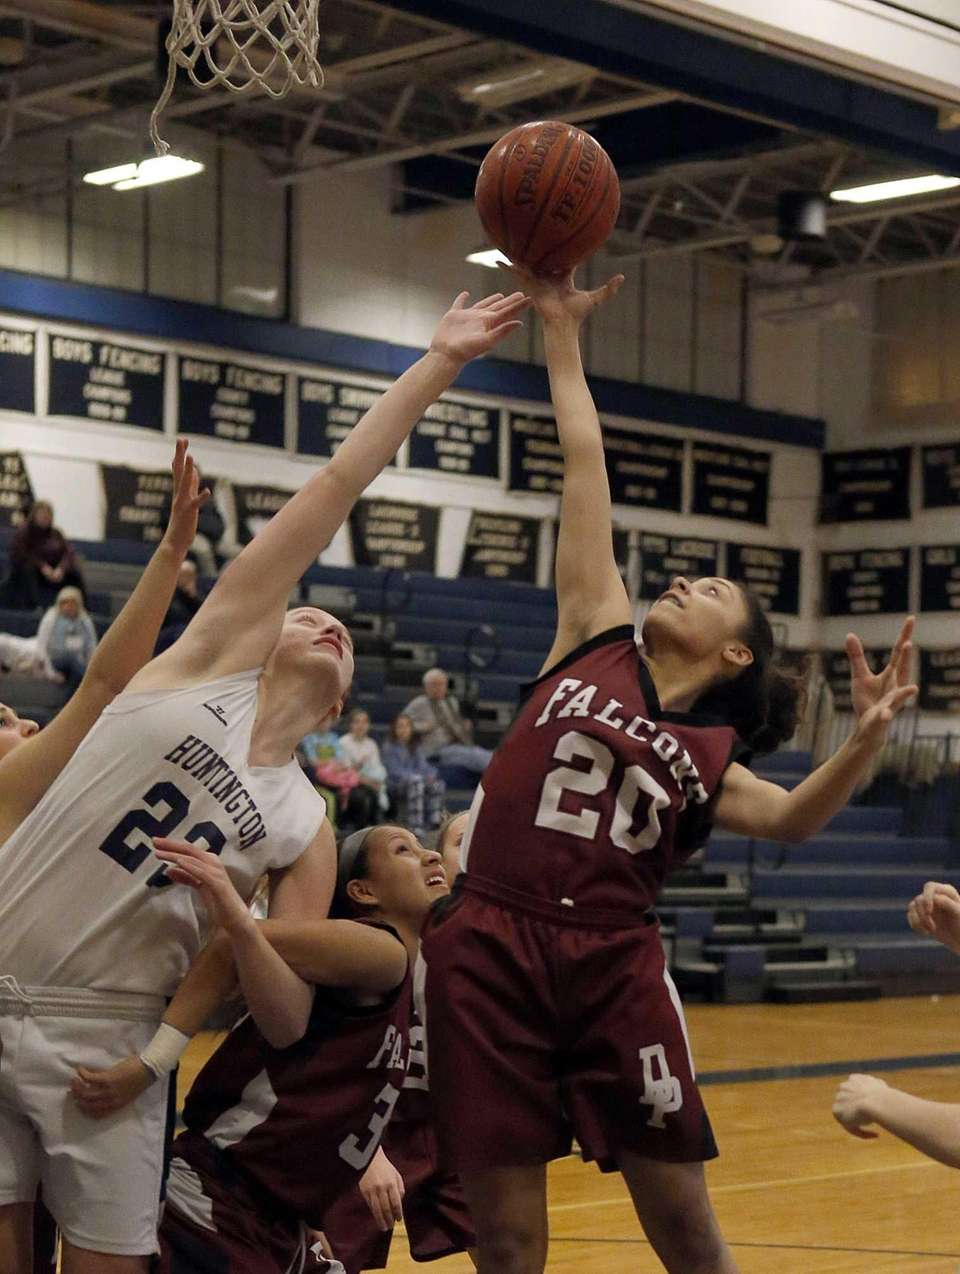 Deer Park's Juliet Quirindongo (20) grabs the rebound